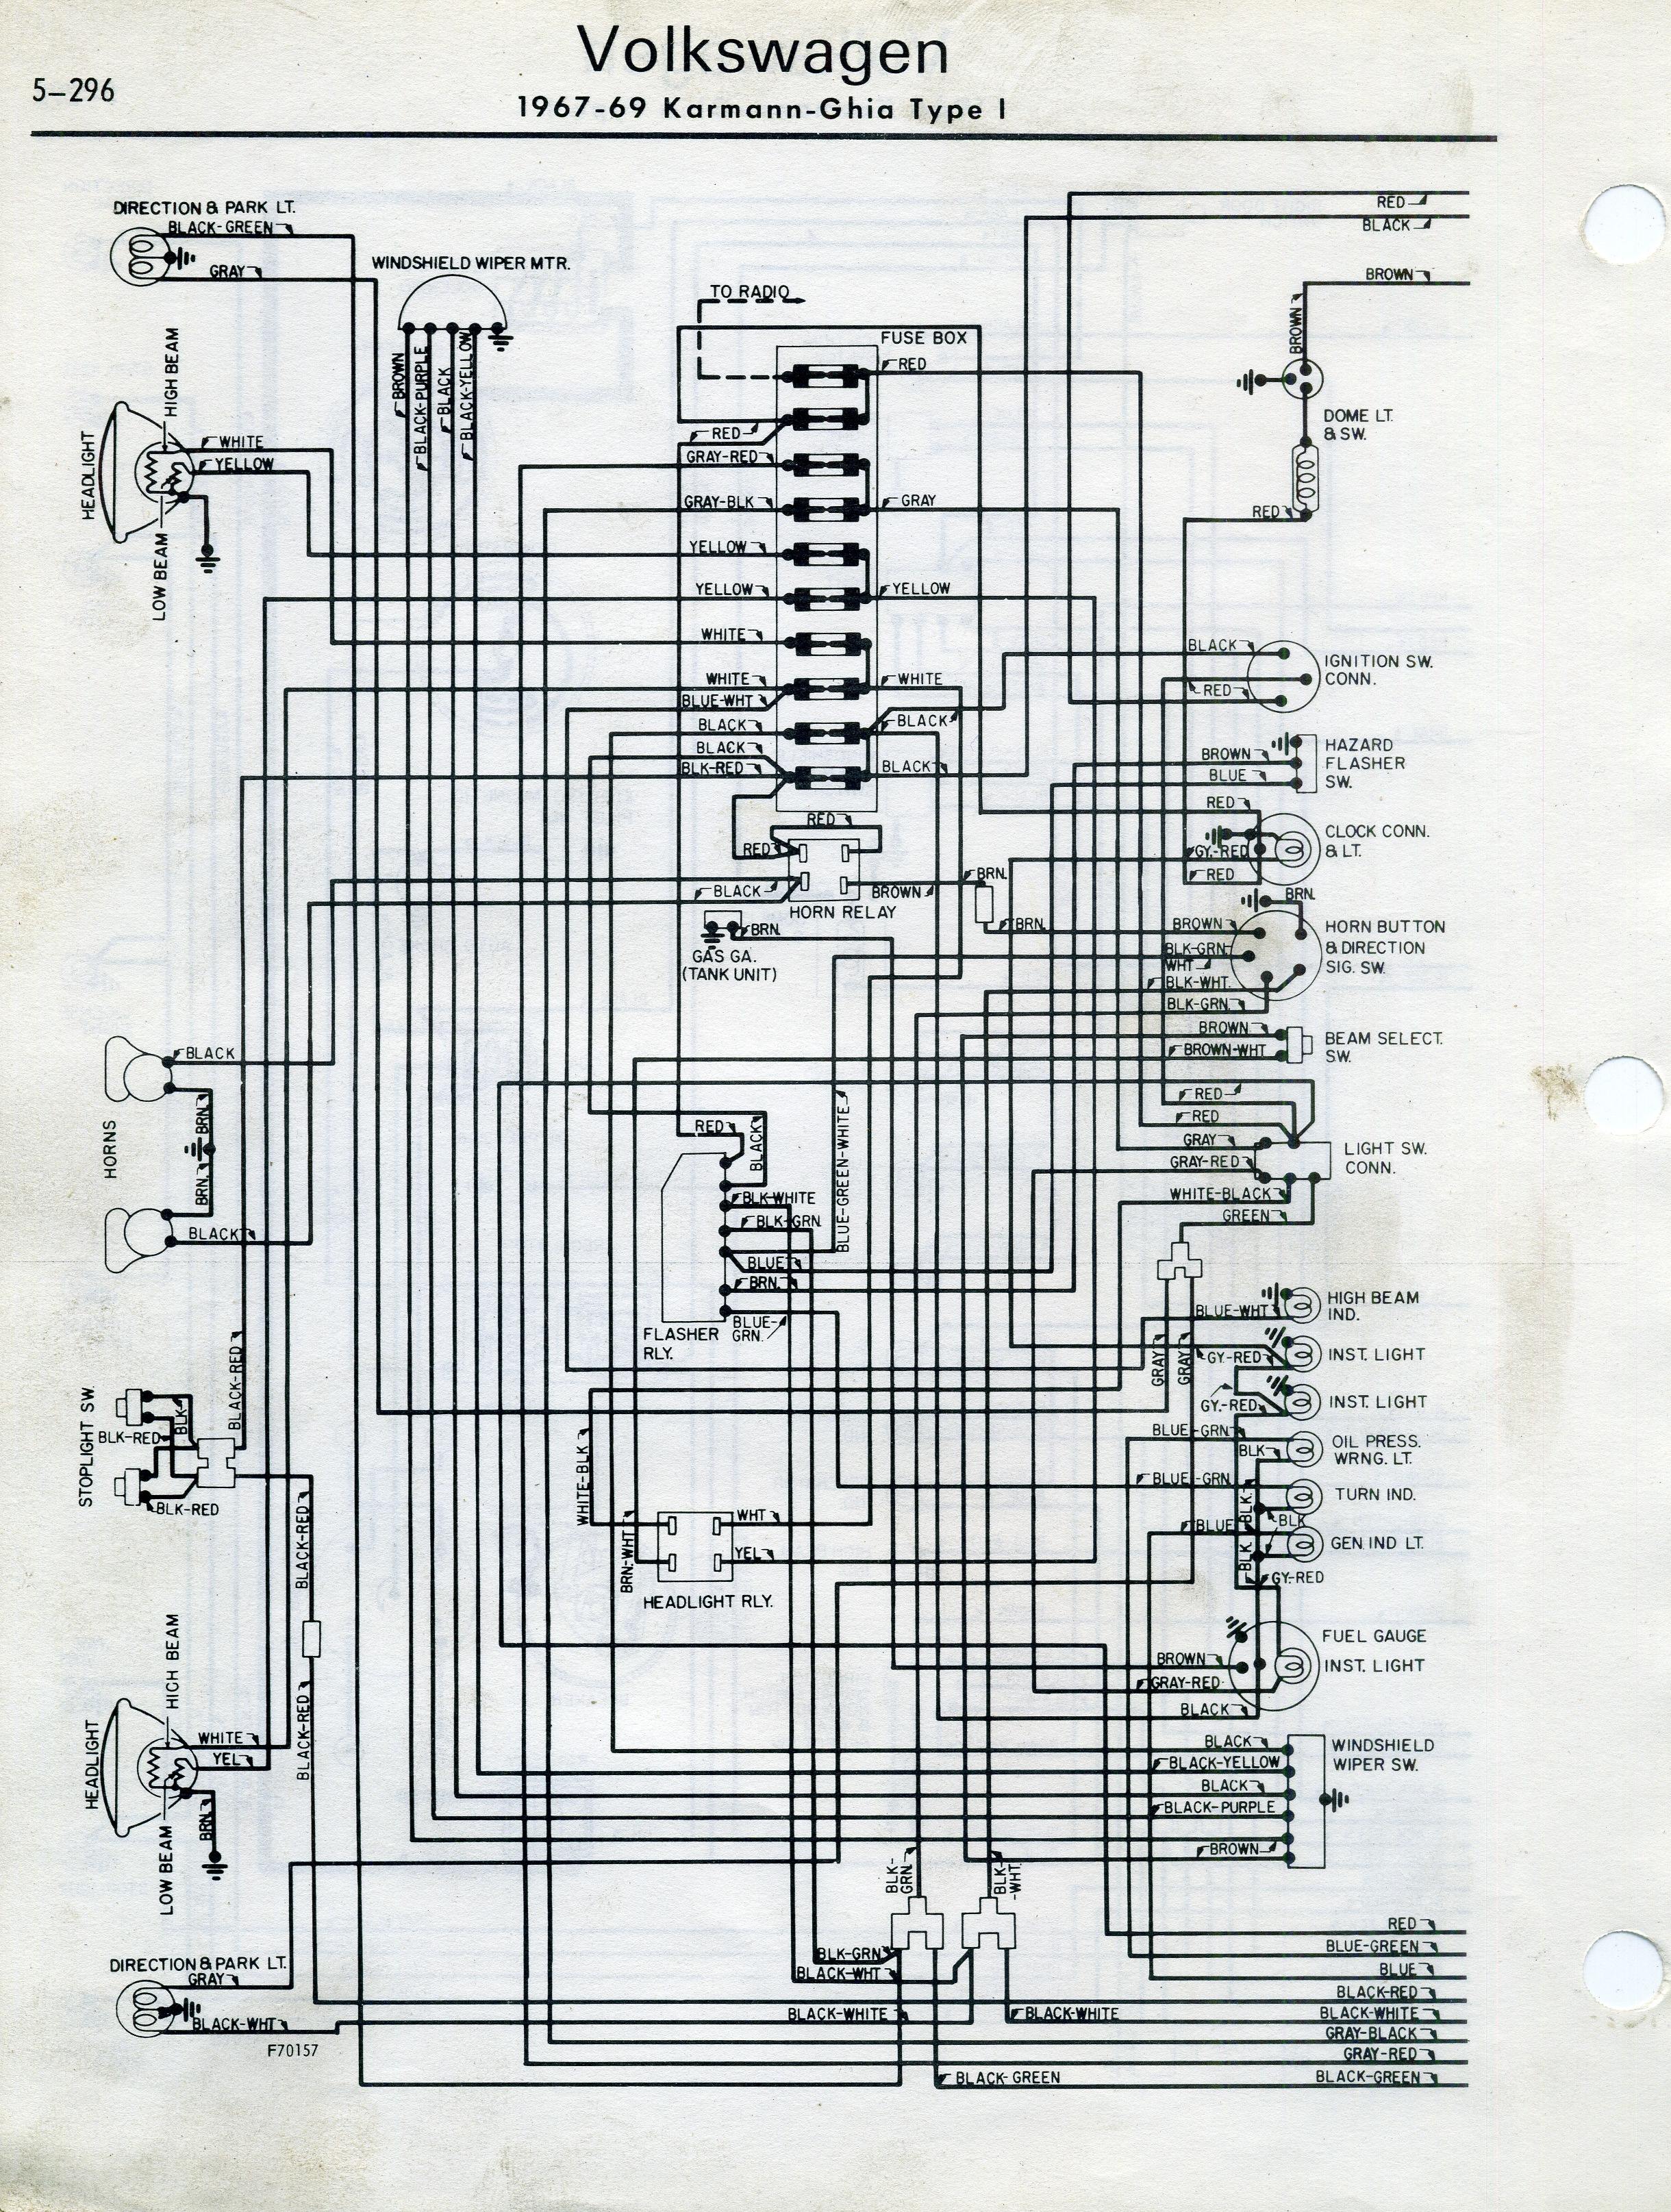 1973 vw karmann ghia wiring schematic thesamba.com :: karmann ghia wiring diagrams